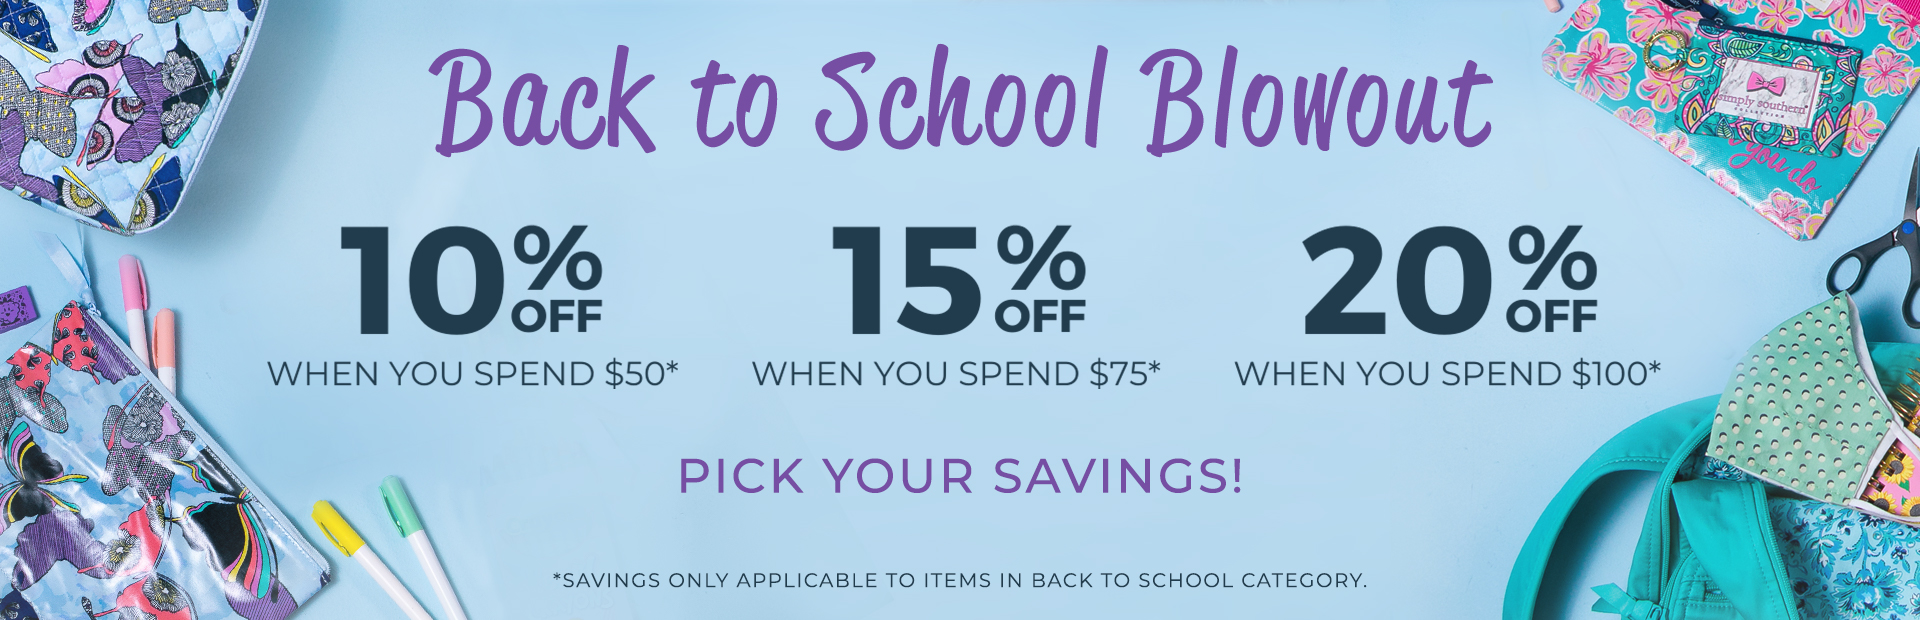 Back to School Blowout - 10 Percent OFF when you spend $50 - 15 Percent OFF when you spend $75 - 20 Percent OFF when you spend $100